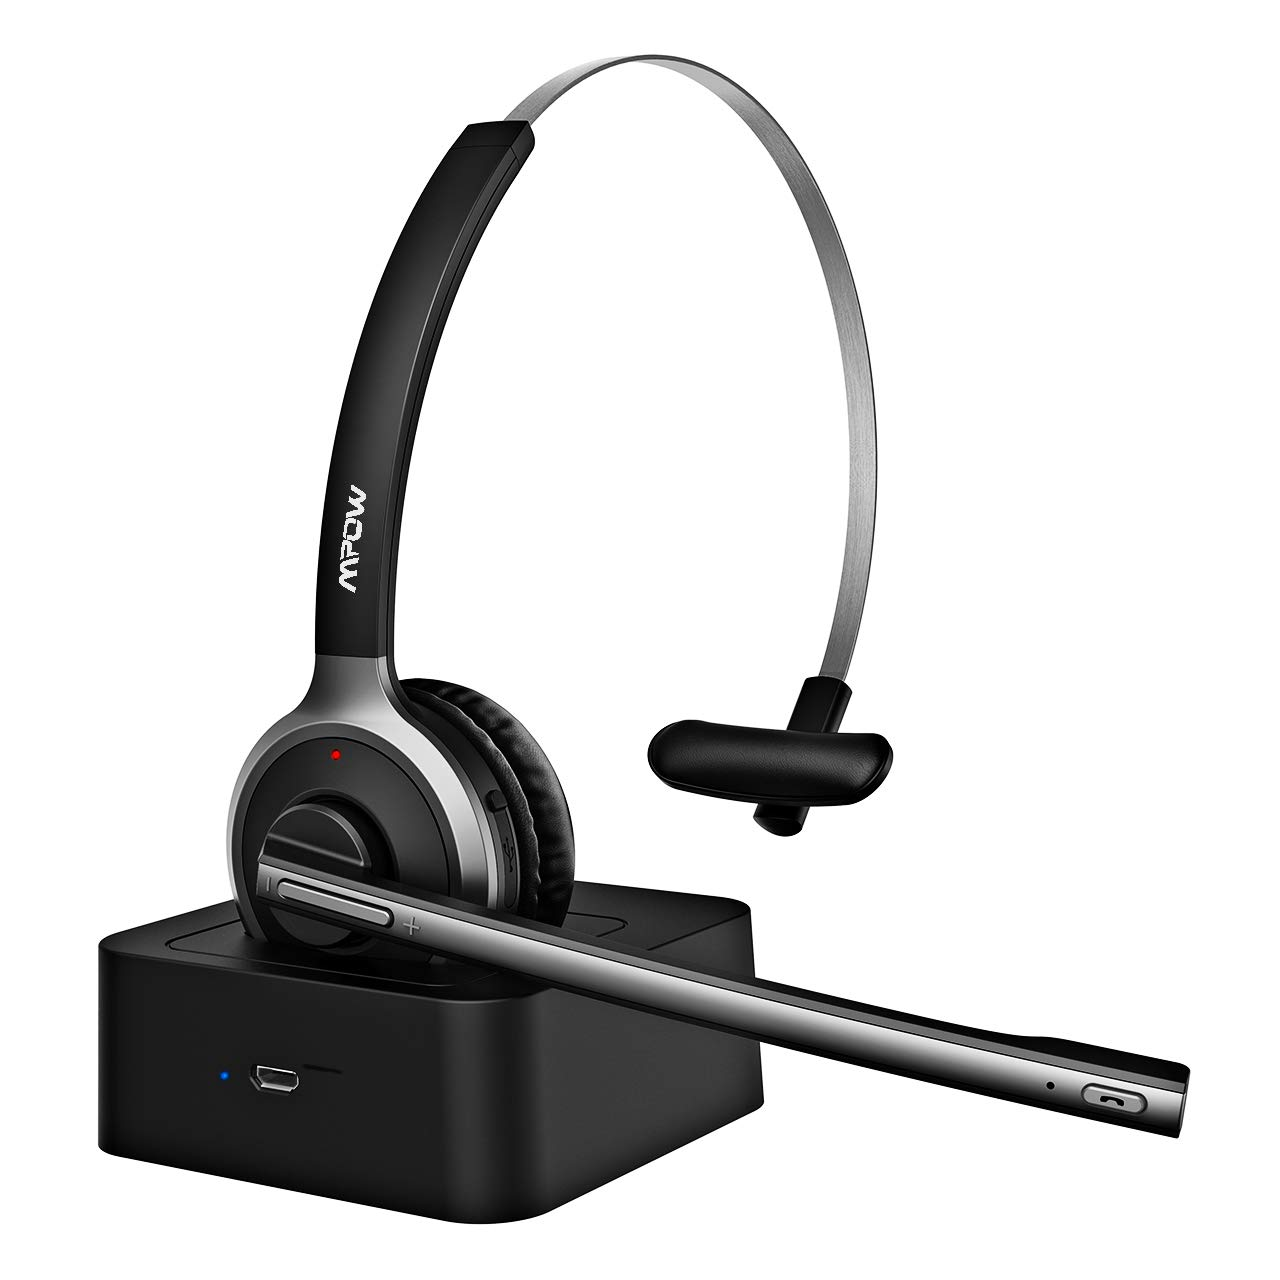 Mpow M5 Pro Bluetooth Headset, Advanced Noise Cancelling Microphone, Strong BT Signal, Comfort-fit Truck Driver Headset with Charging Base, Hands-Free Wireless Headphones for Skype/Call Center/Office